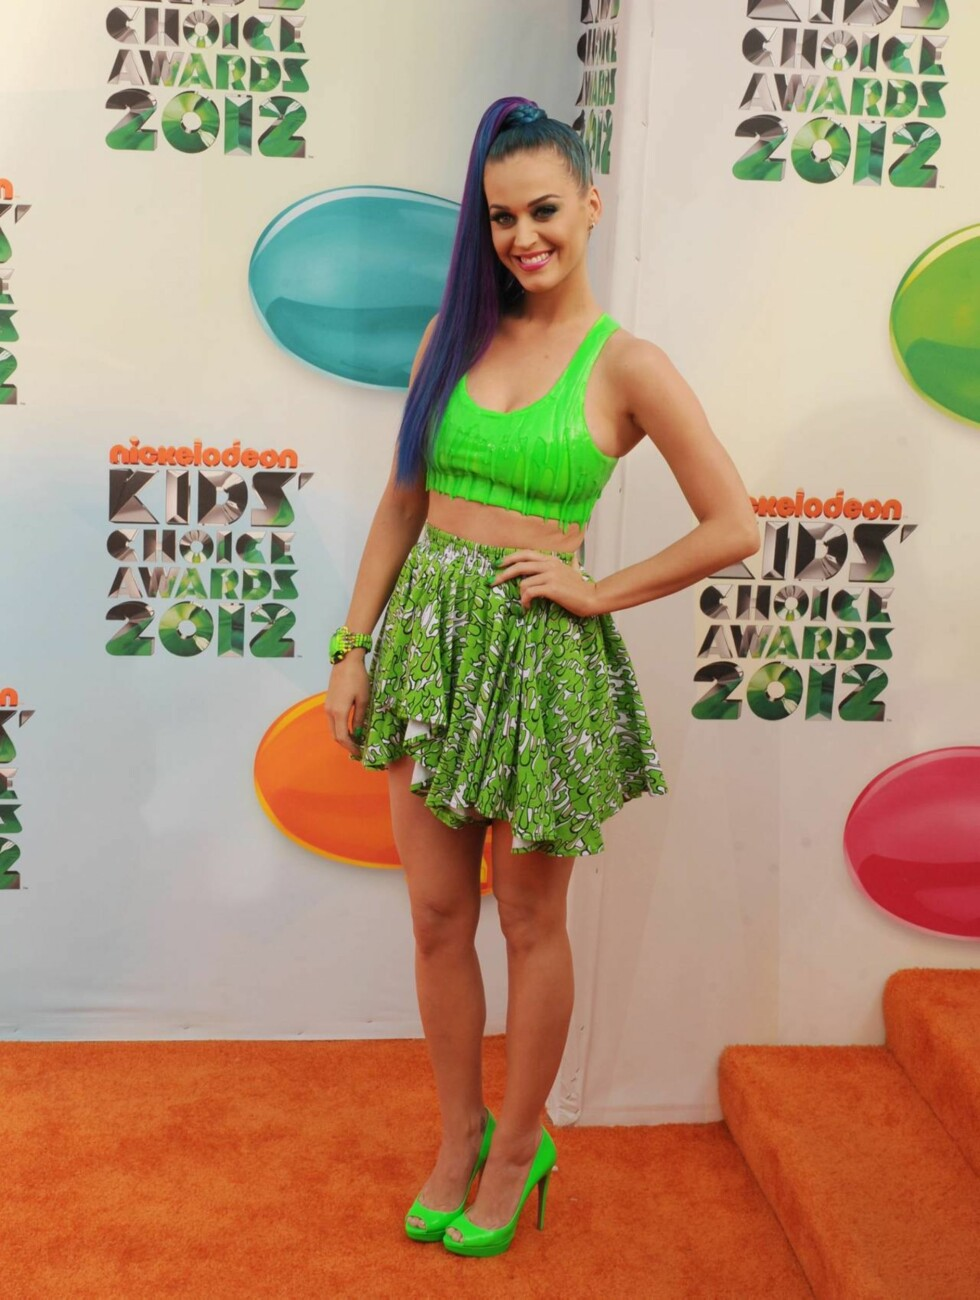 (March 31, 2012 - Los Angeles, CA)..Katy Perry pictured..Nickelodeons 25th Annual Kids Choice Awards held at USCs Galen Center  P by: James mes K. Murphy/Loud & Clear Code: 4025  COPYRIGHT STELLA  PICTURES Foto: Stella Pictures